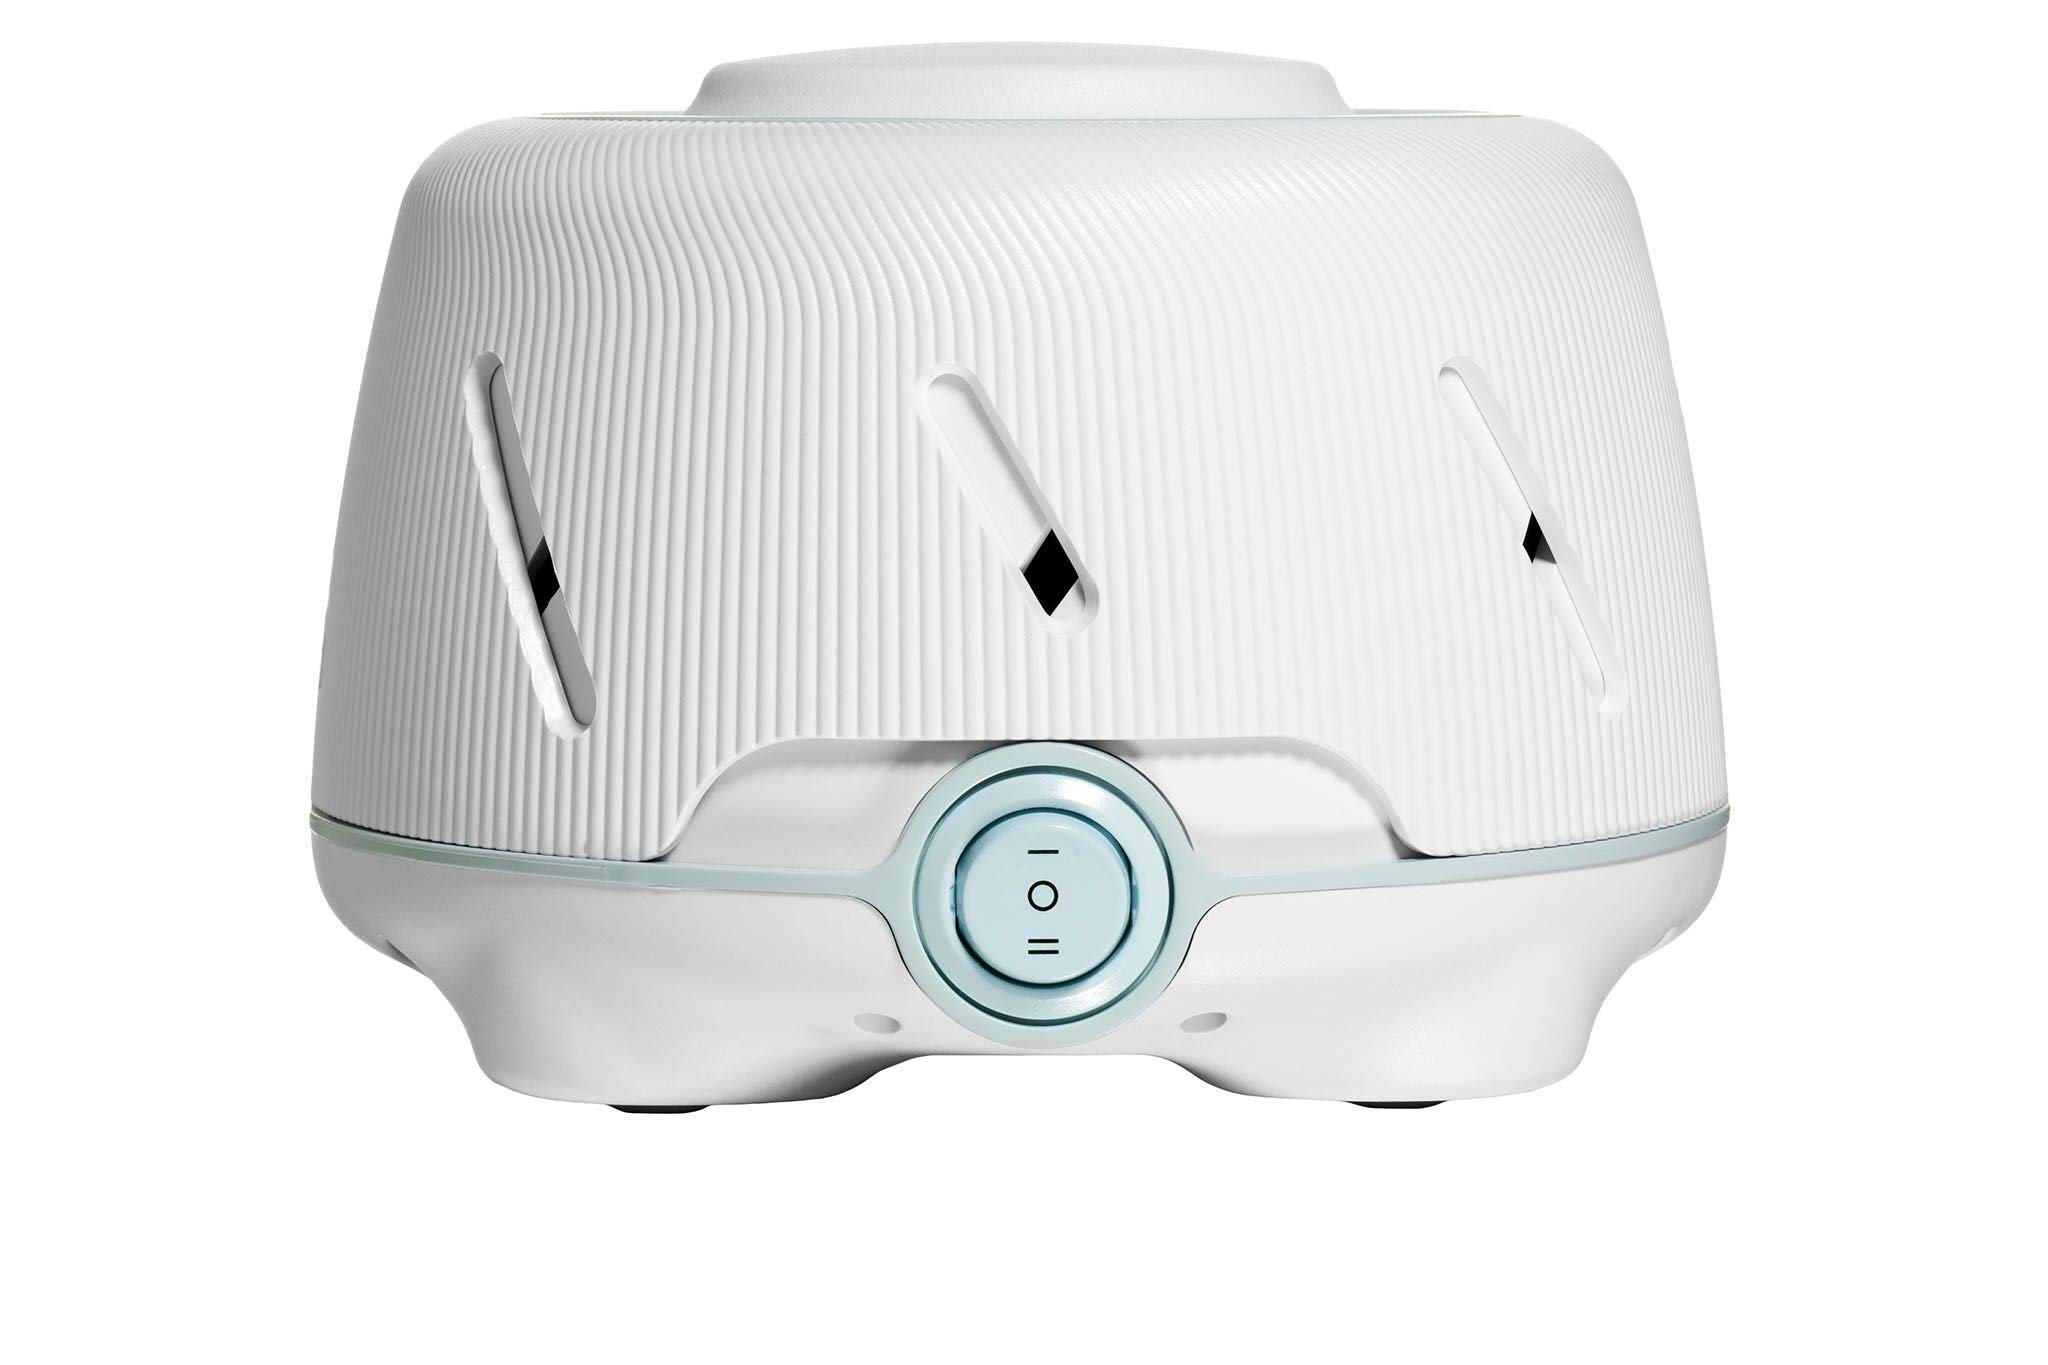 Marpac Dohm (White/Blue) | The Original White Noise Machine | Soothing Natural Sound from a Real Fan | Noise Cancelling | Sleep Therapy, Office Privacy, Travel | For Adults & Baby | 101 Night Trial by Marpac